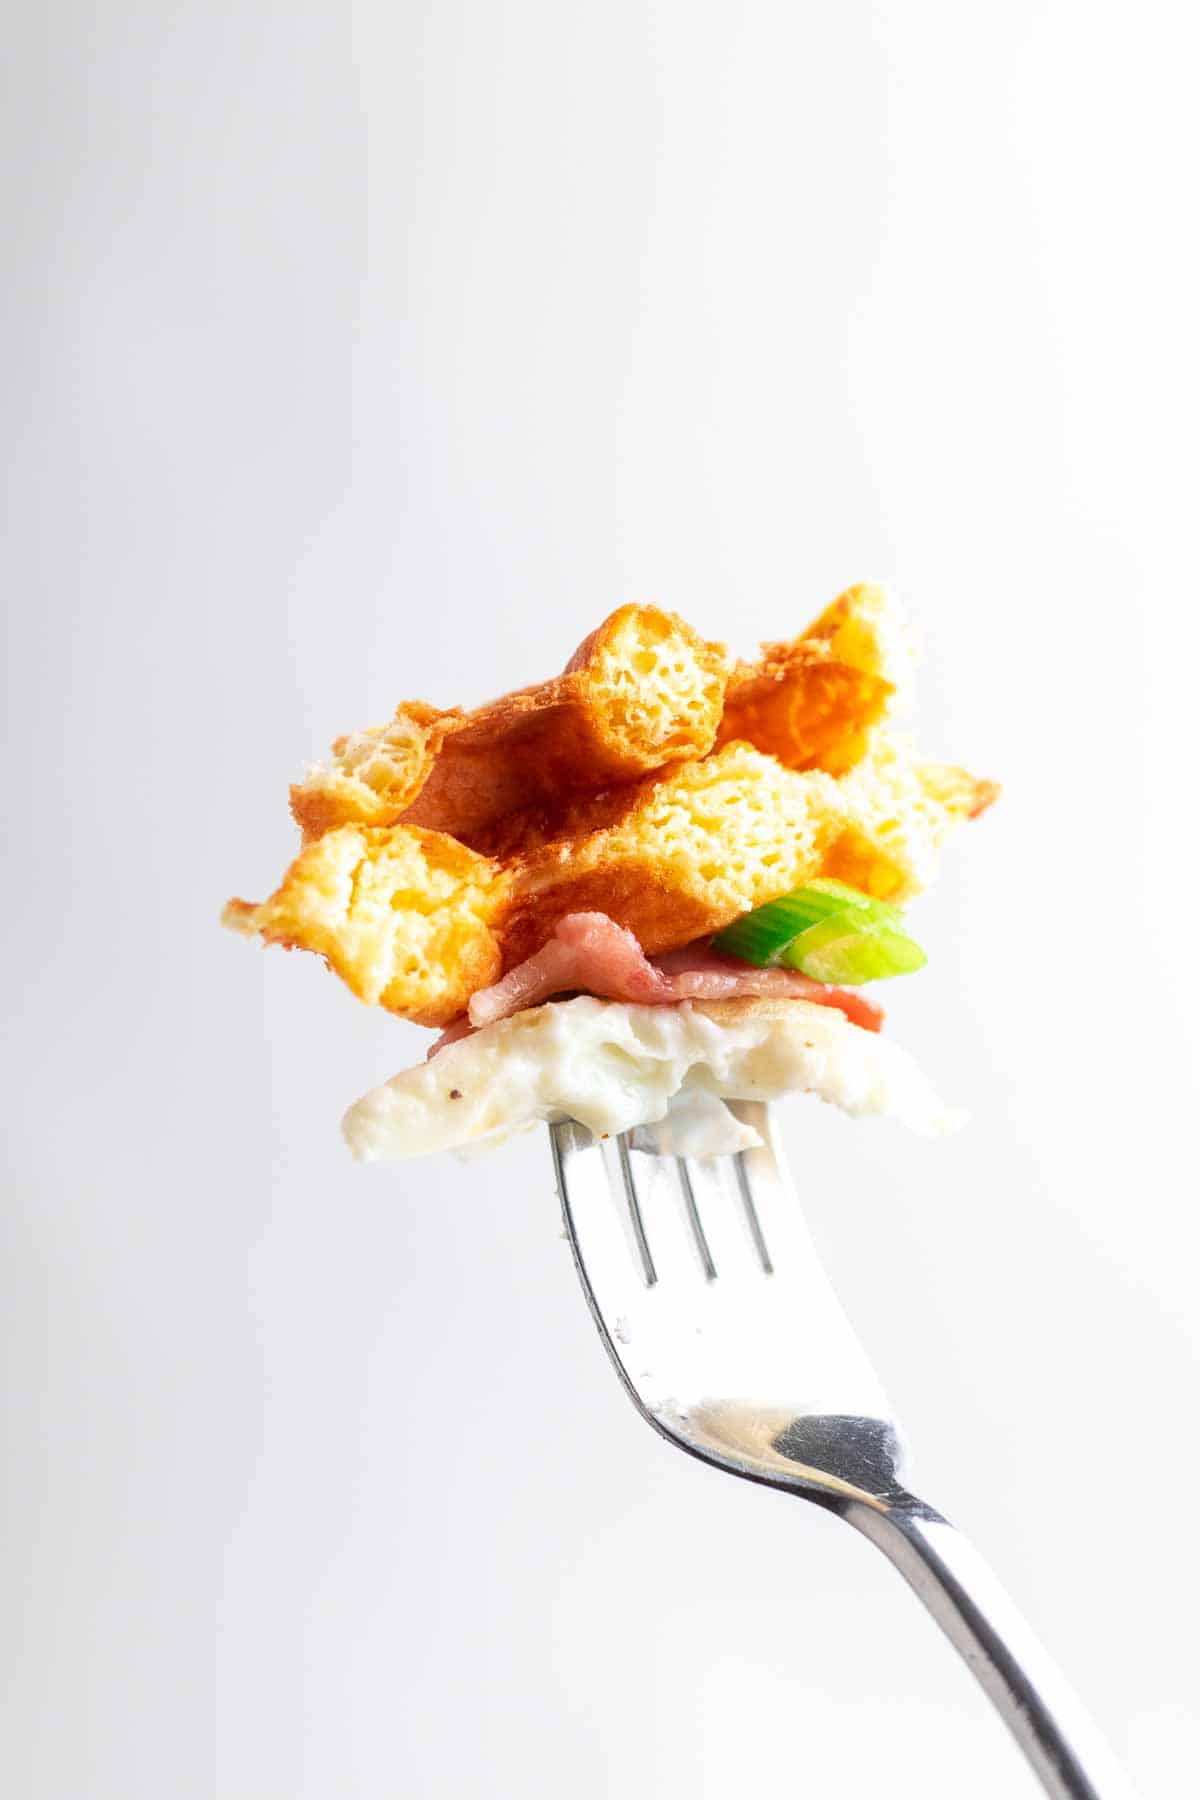 A fork holding a bite of chaffle and toppings in front of white space